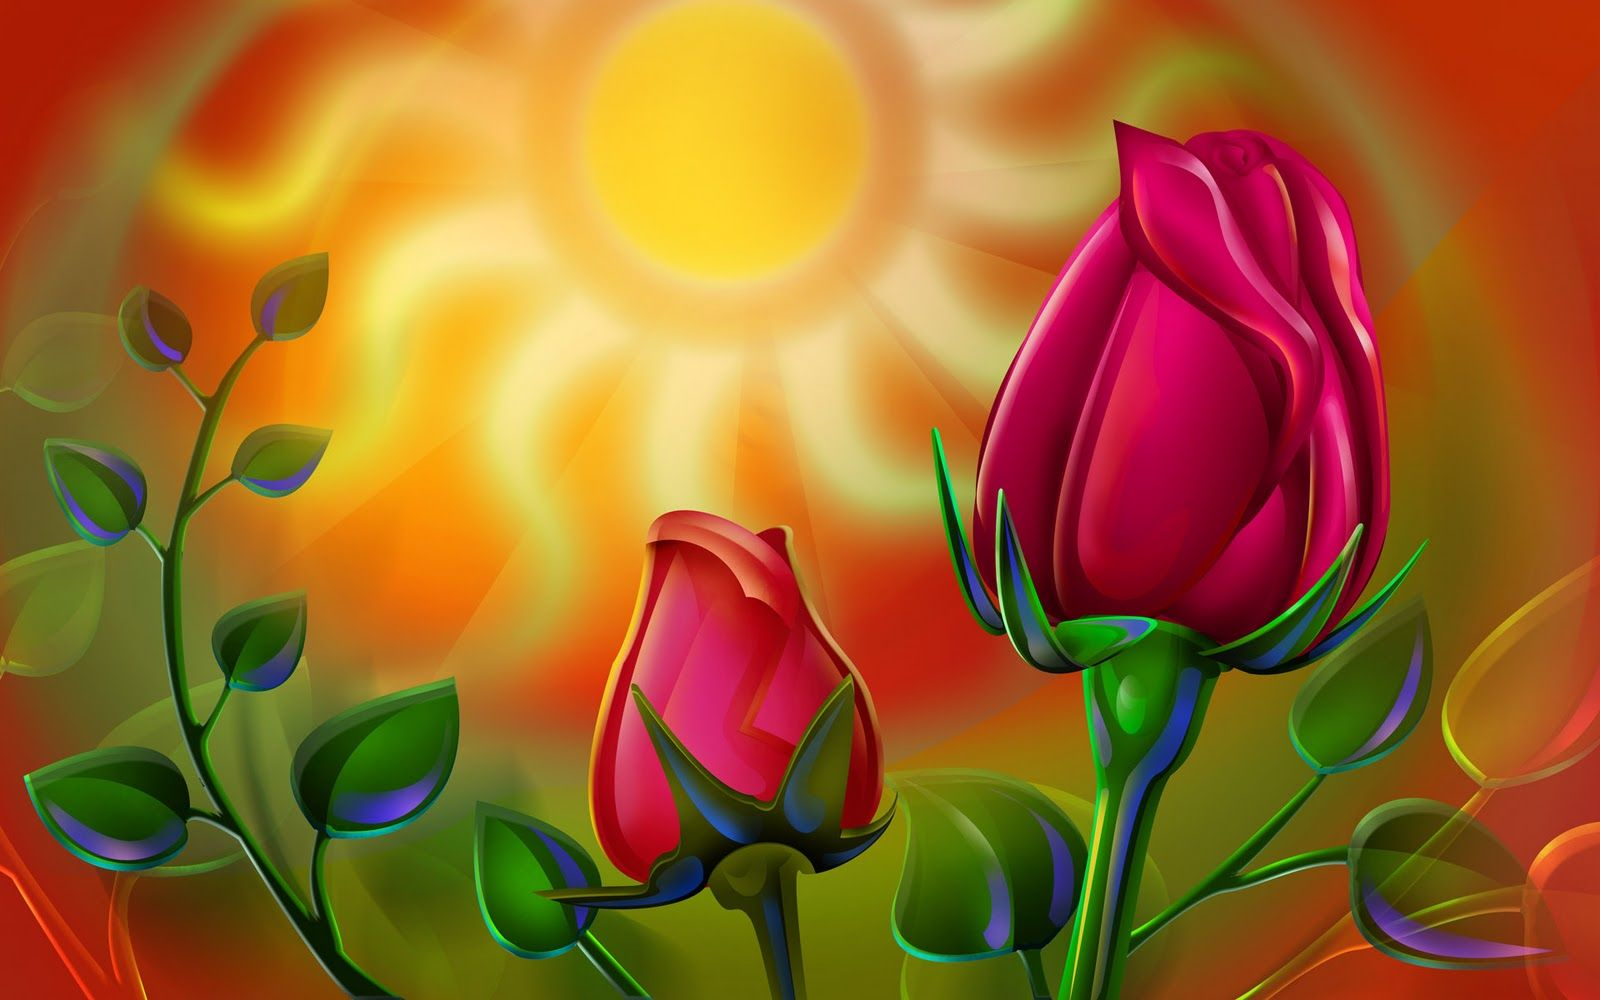 roses wallpapers hd rose wallpaper 49 3d pink red roses wallpaper 1600x1000